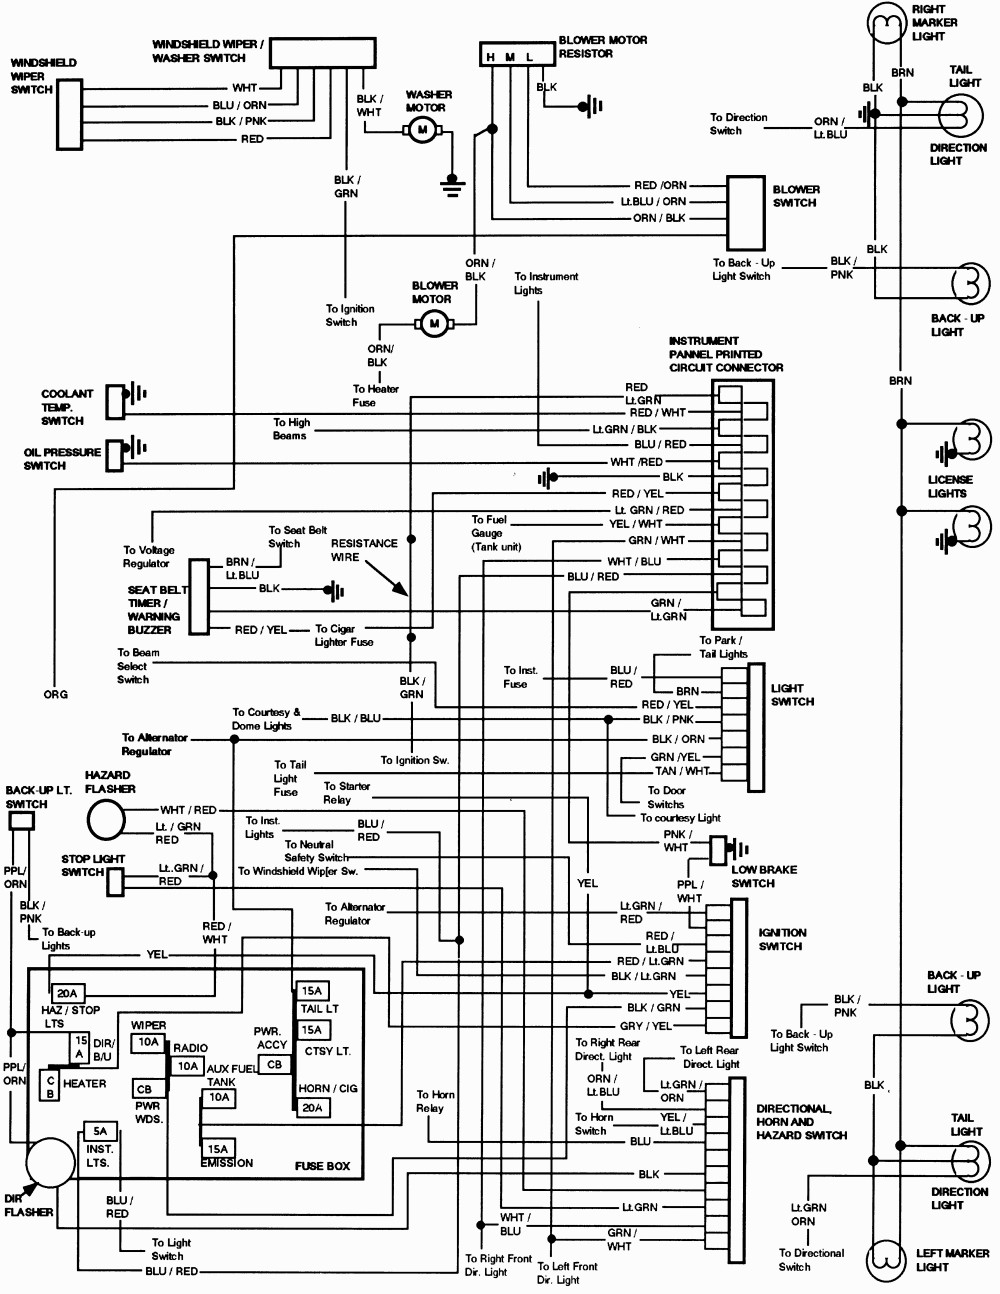 wiring diagram also electrical wiring color code diagram wiring